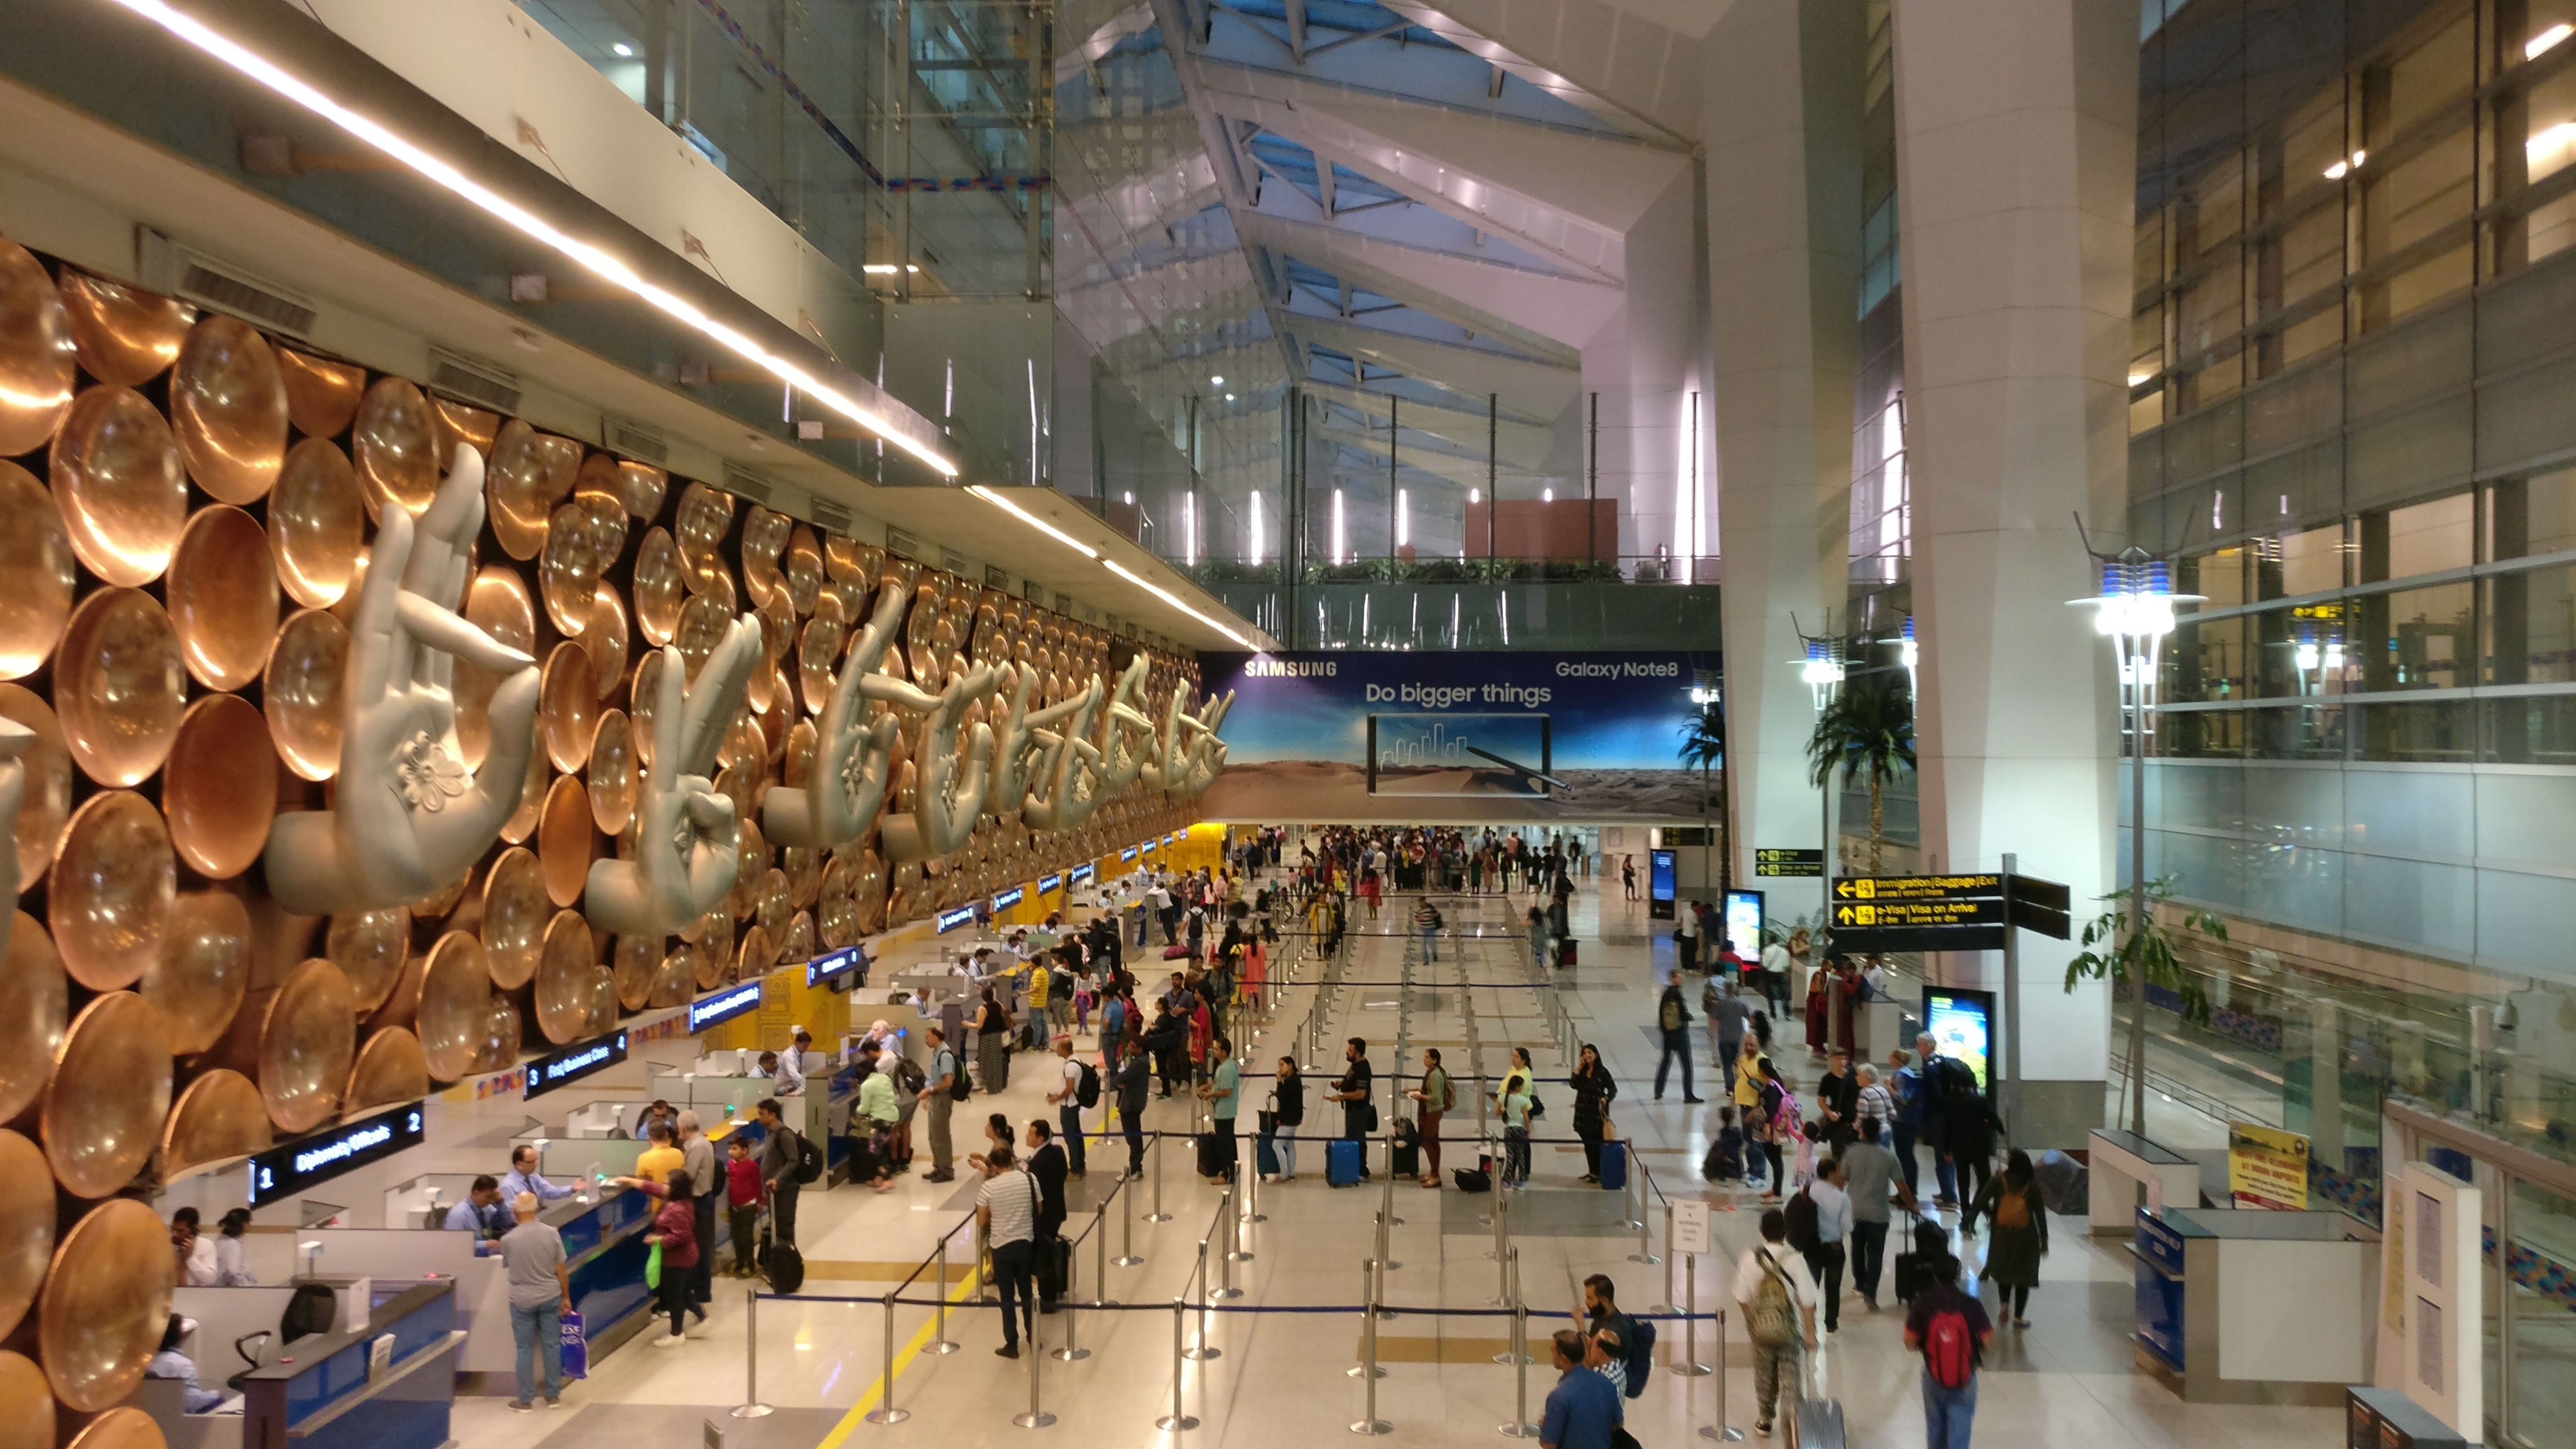 IGI Airport: Need to arrive 3 hours before for domestic flight and 4 hours for international